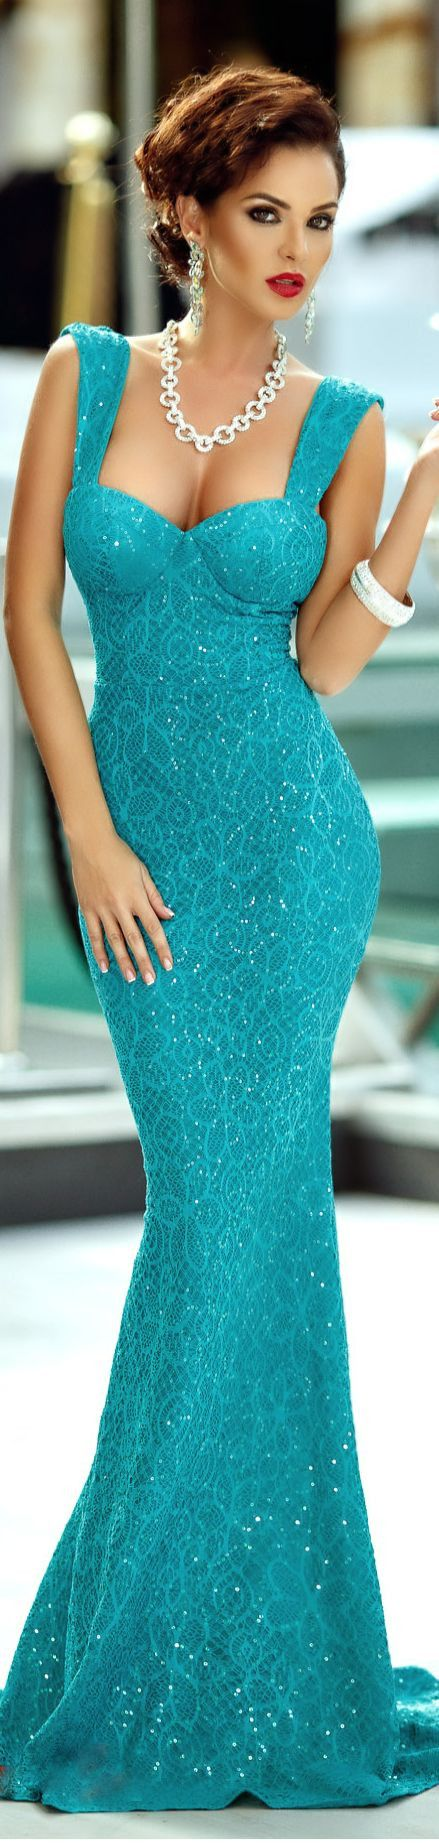 Sexy Mermaid Lace Sequined Green Prom Dress